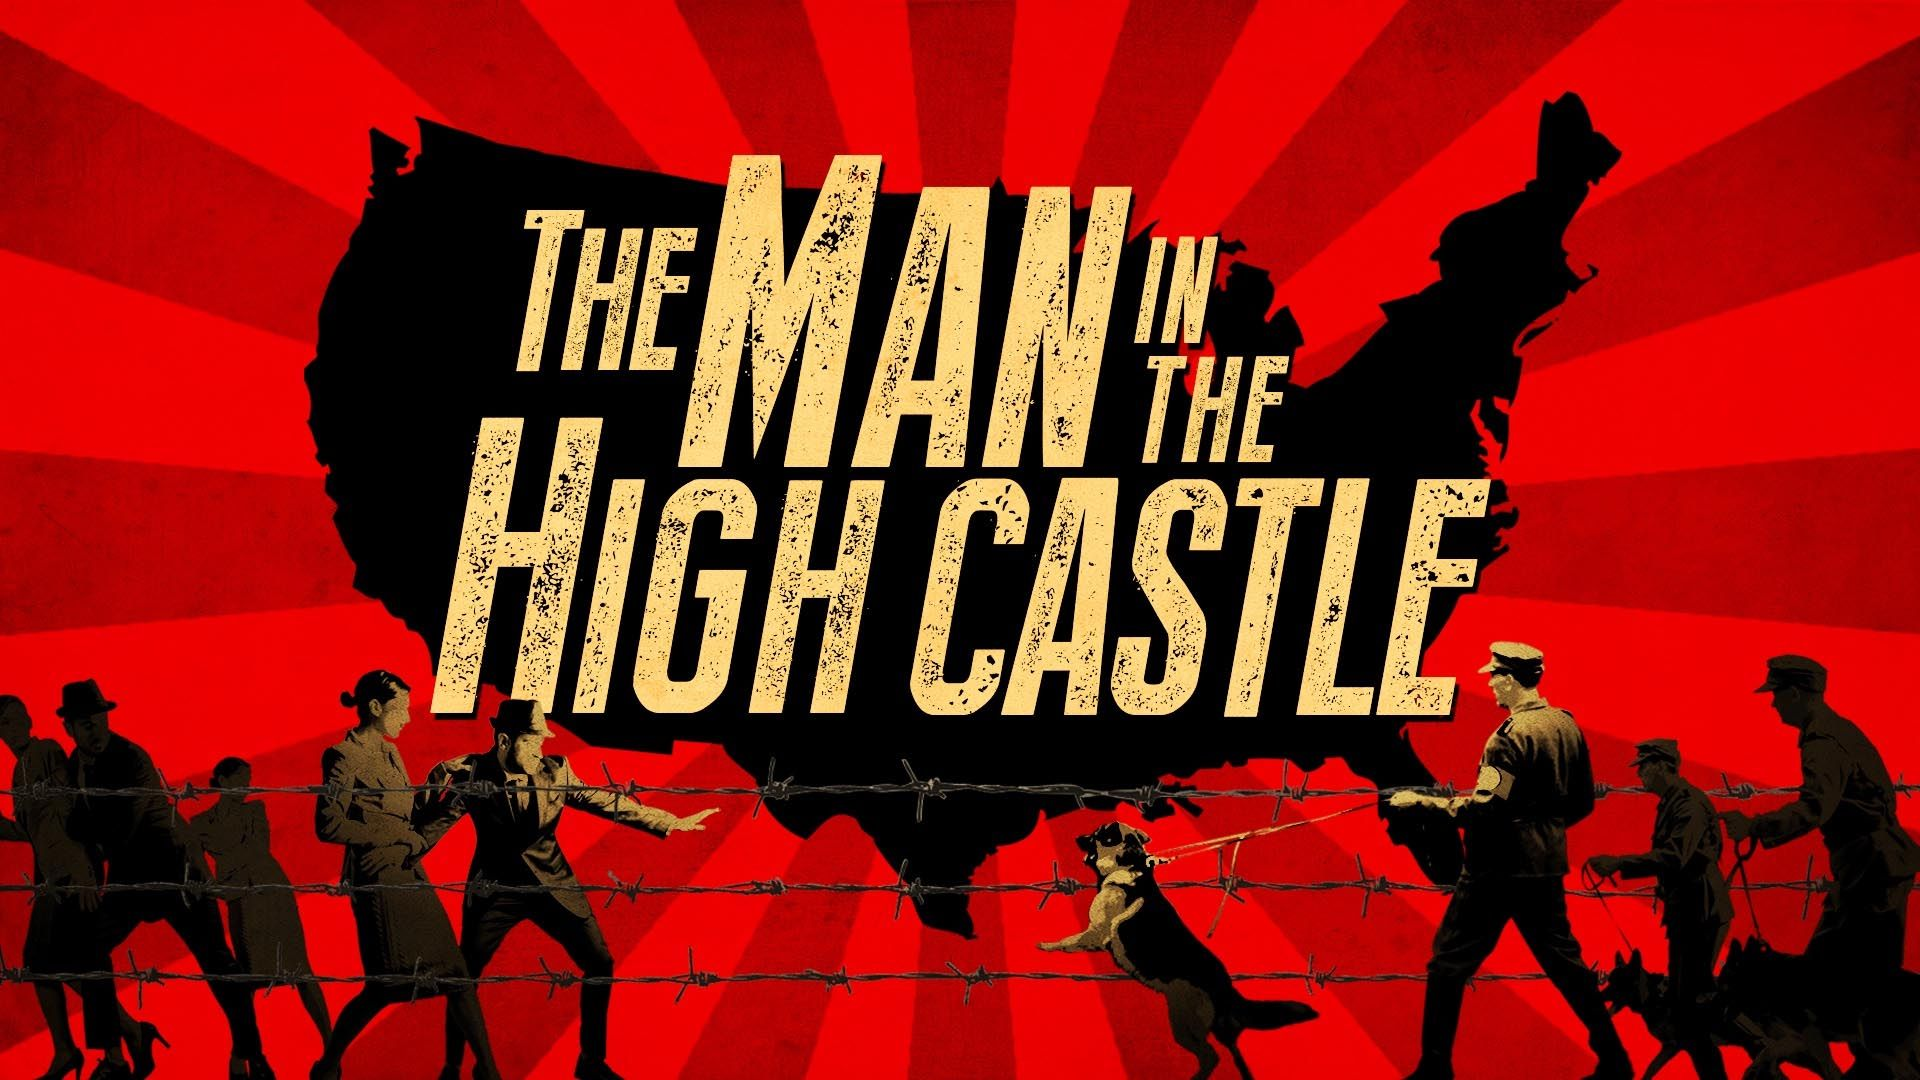 Man In The High Castle Wallpapers Top Free Man In The High